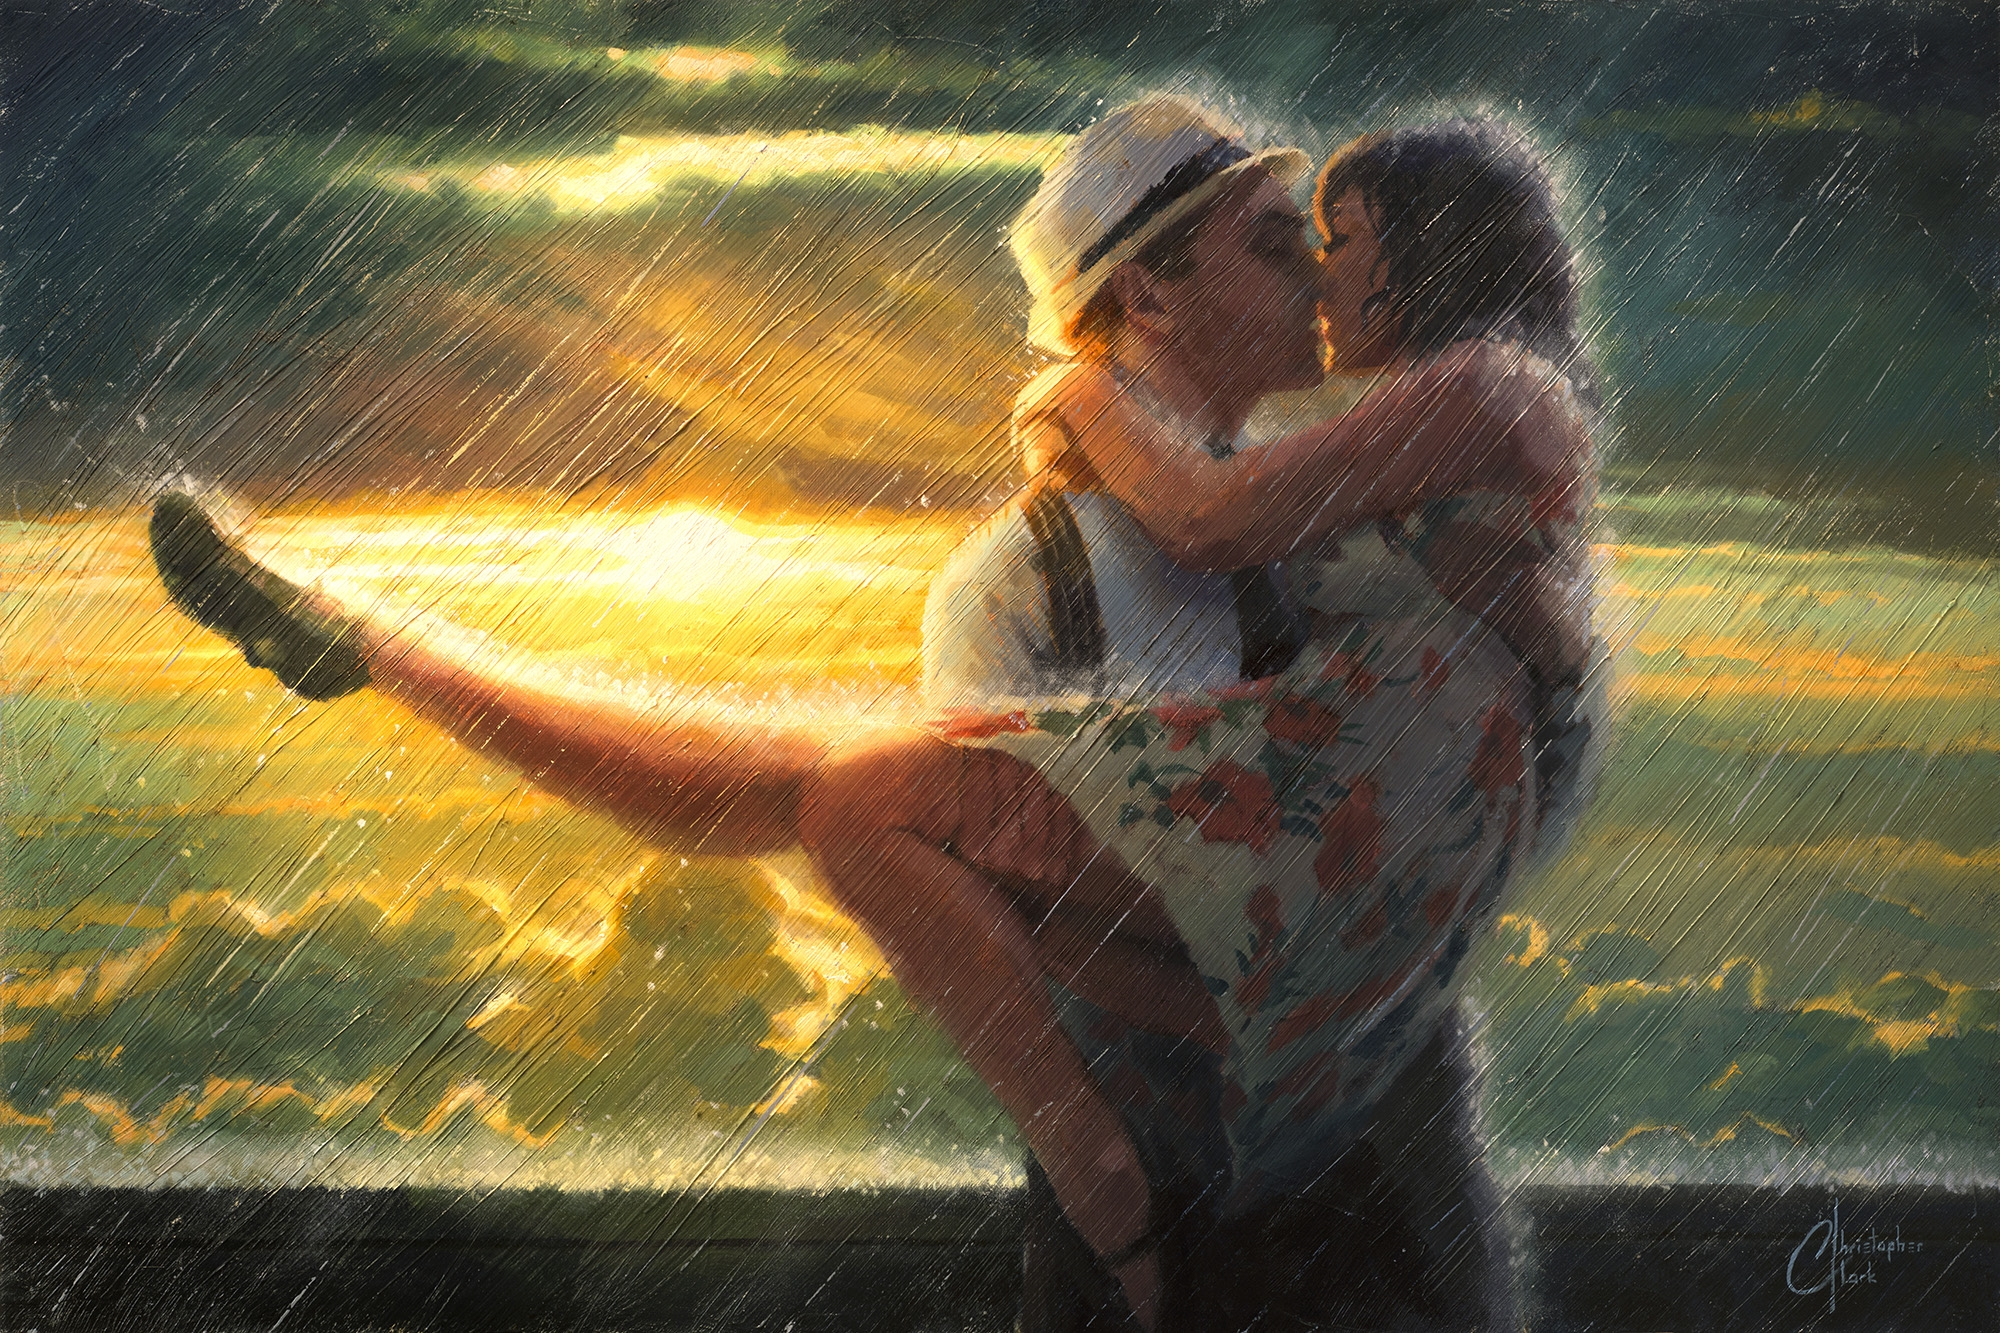 Romance in the Rain by Christopher Clark